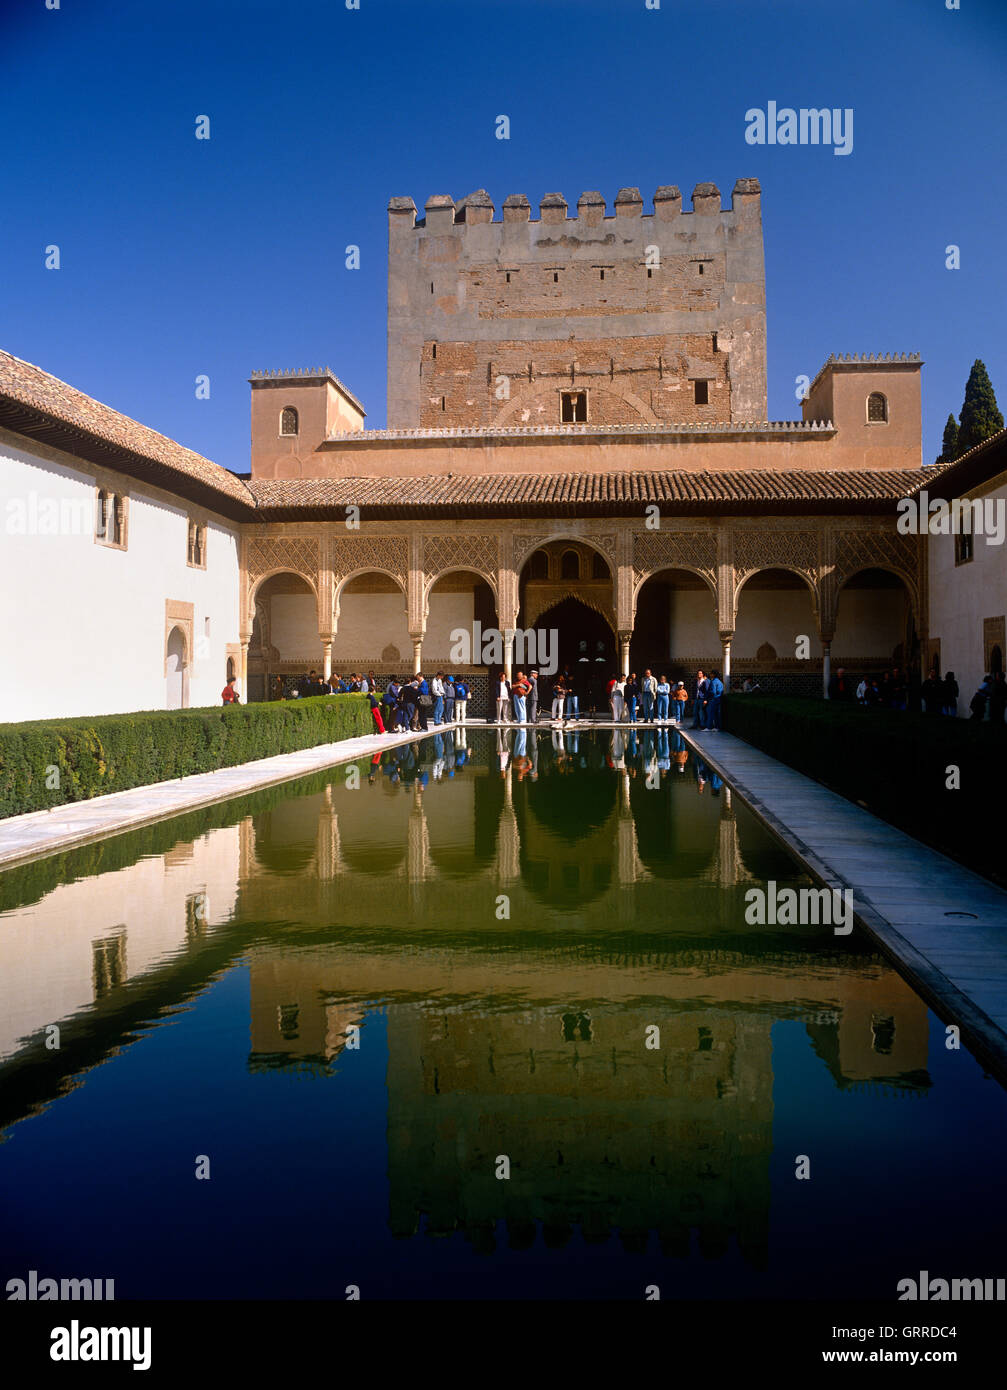 Court of the Myrtles, Alhambra Palace, Granada, Andalucia, Spain - Stock Image